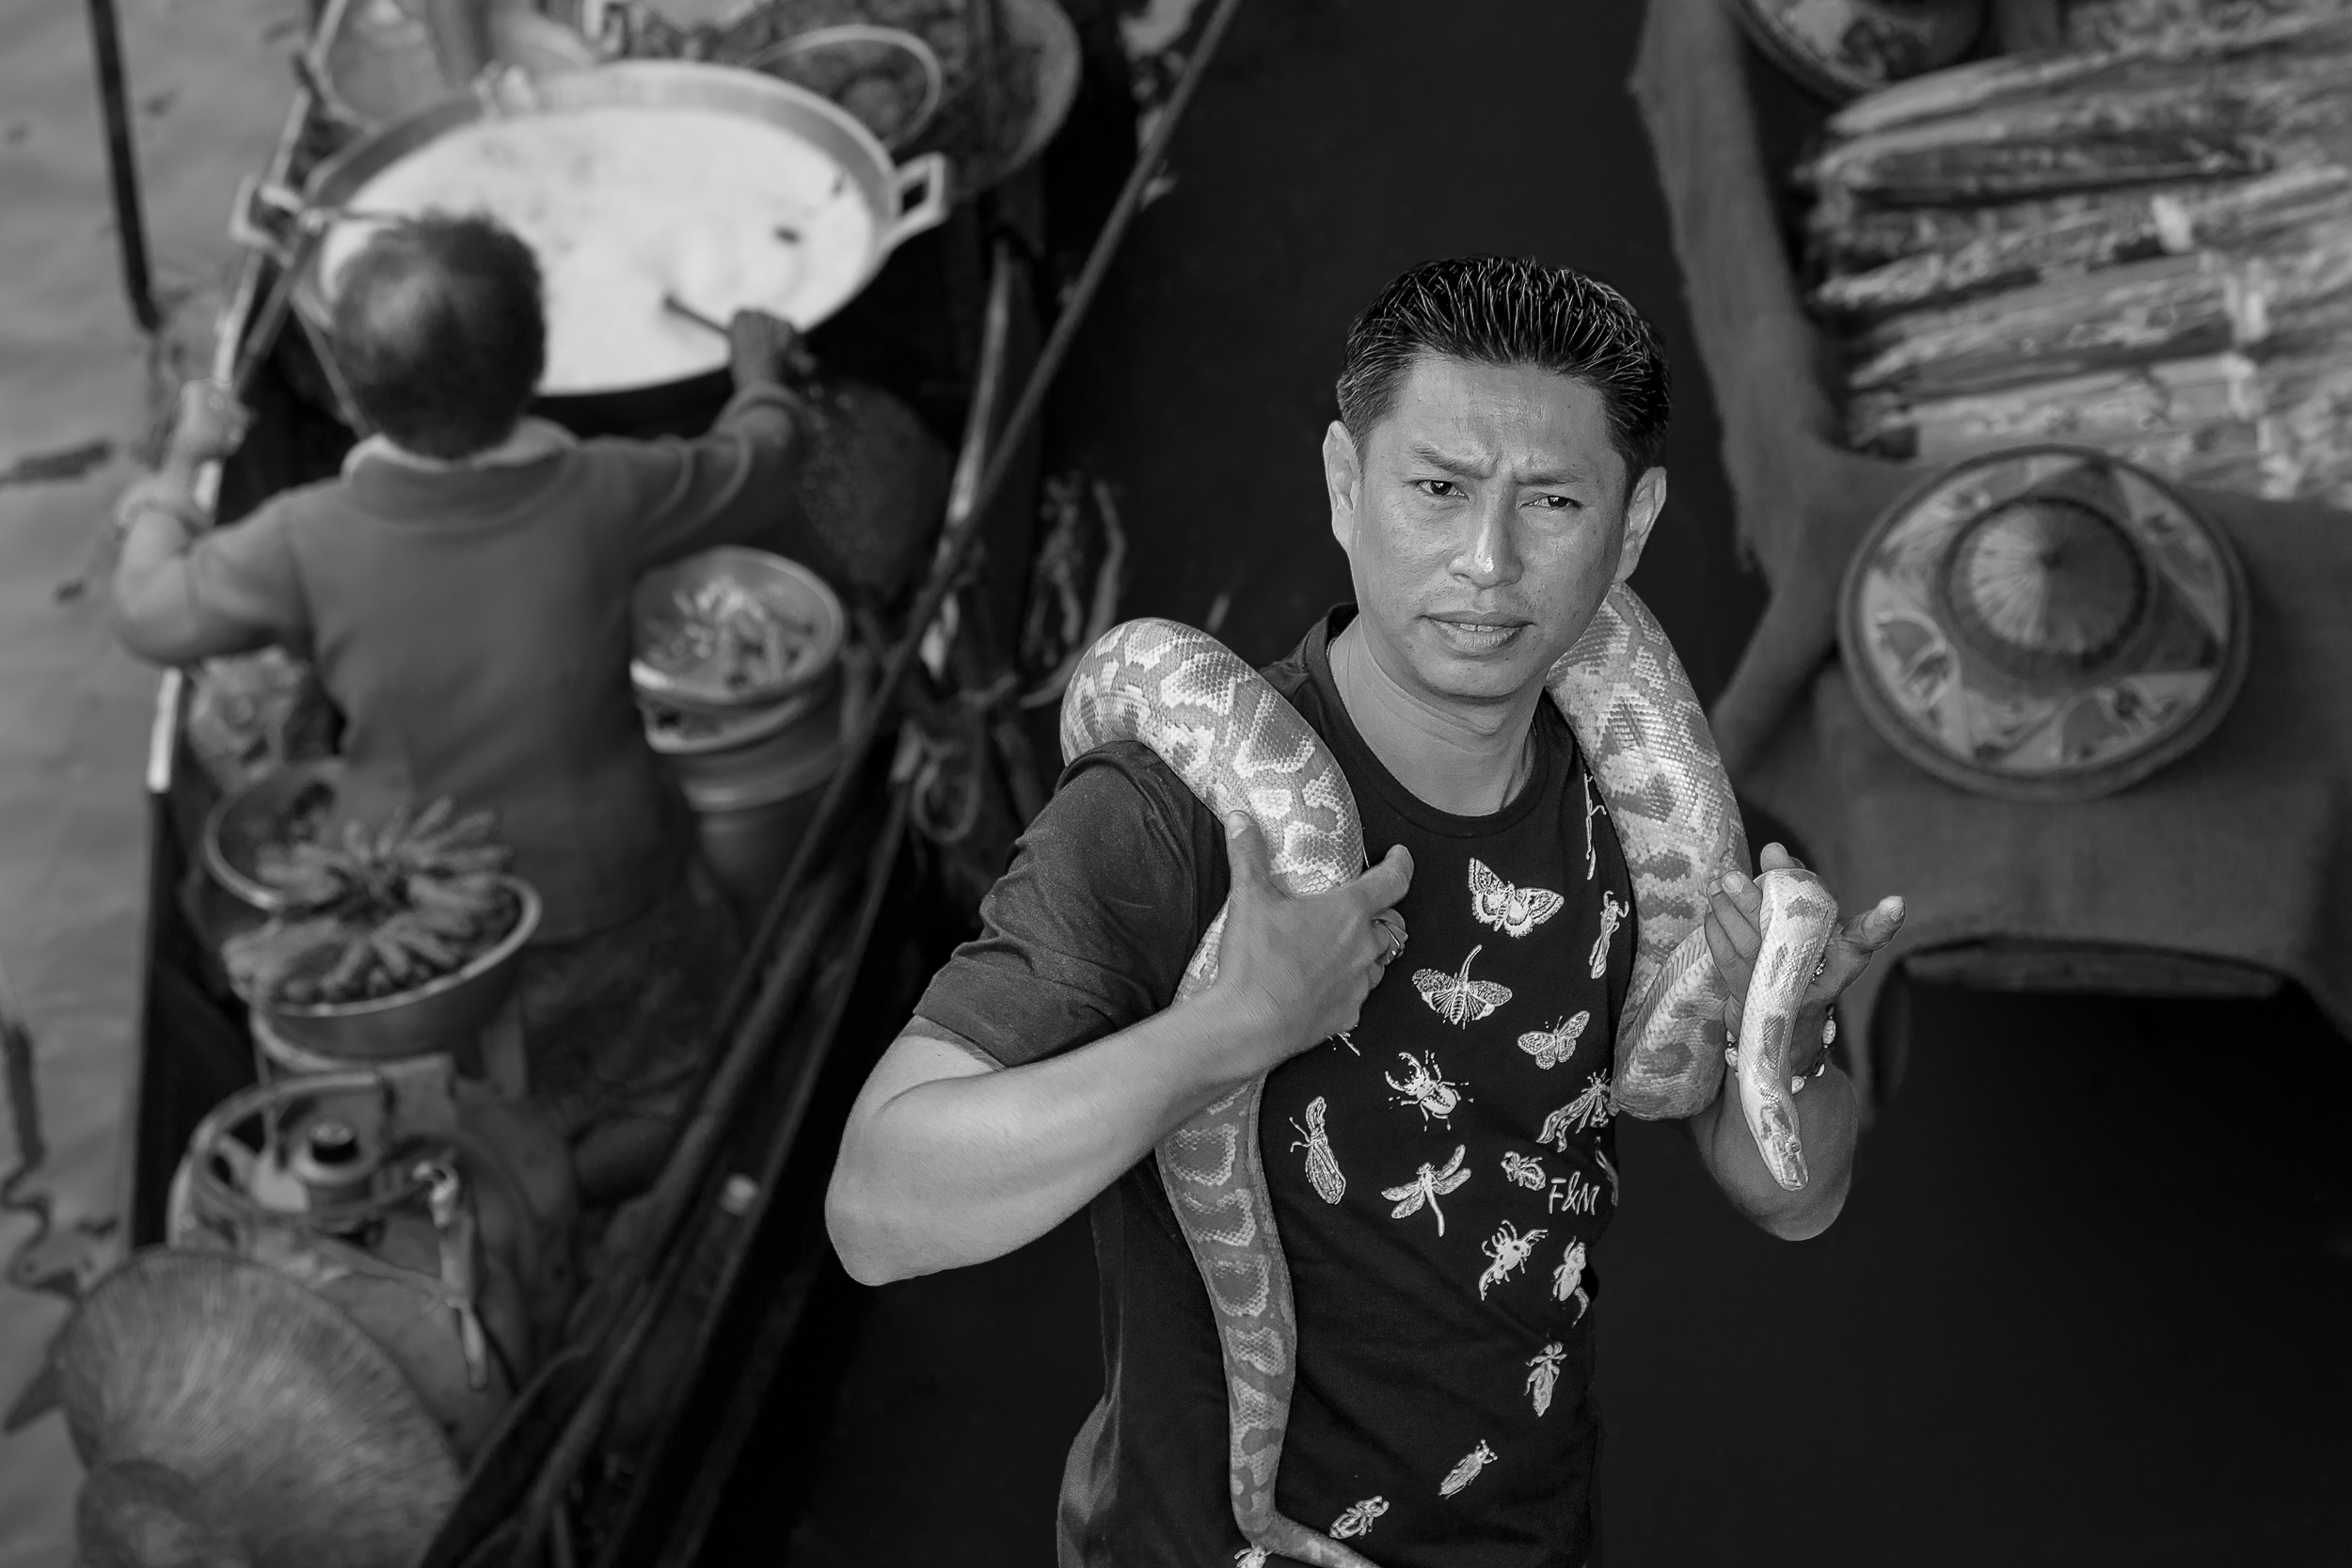 A  snake handler  poses for photographs with a  large, yellow python  at the  Floating Markets  near  Bangkok, Thailand .